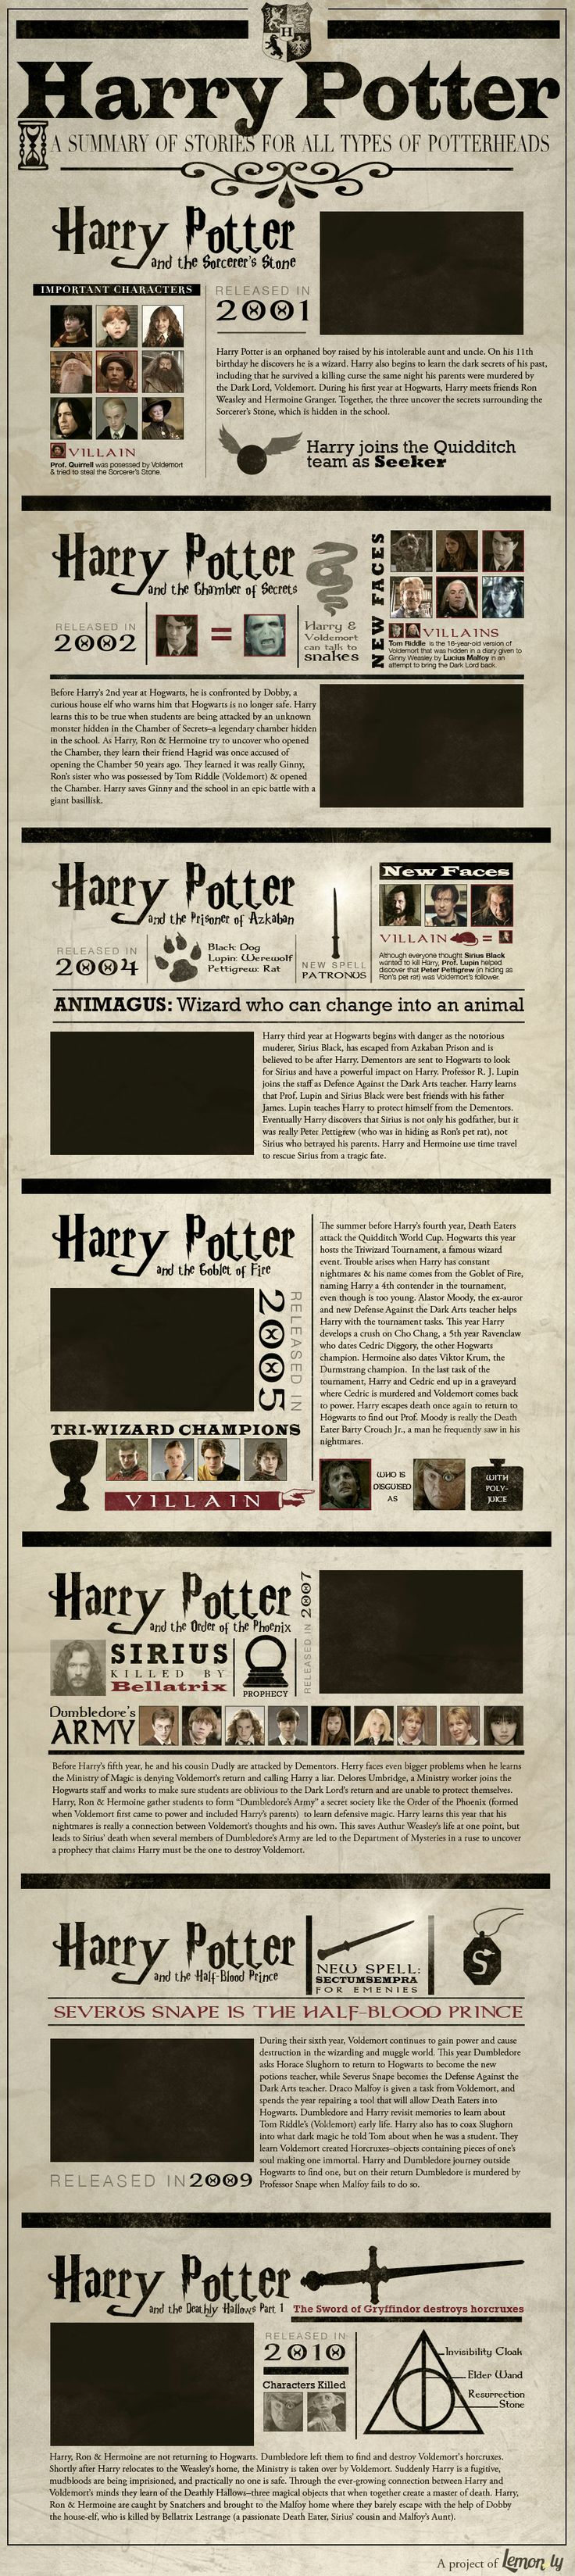 Harry Potter - A summary of stories for all types of PotterHeads #infographic #HarryPotter